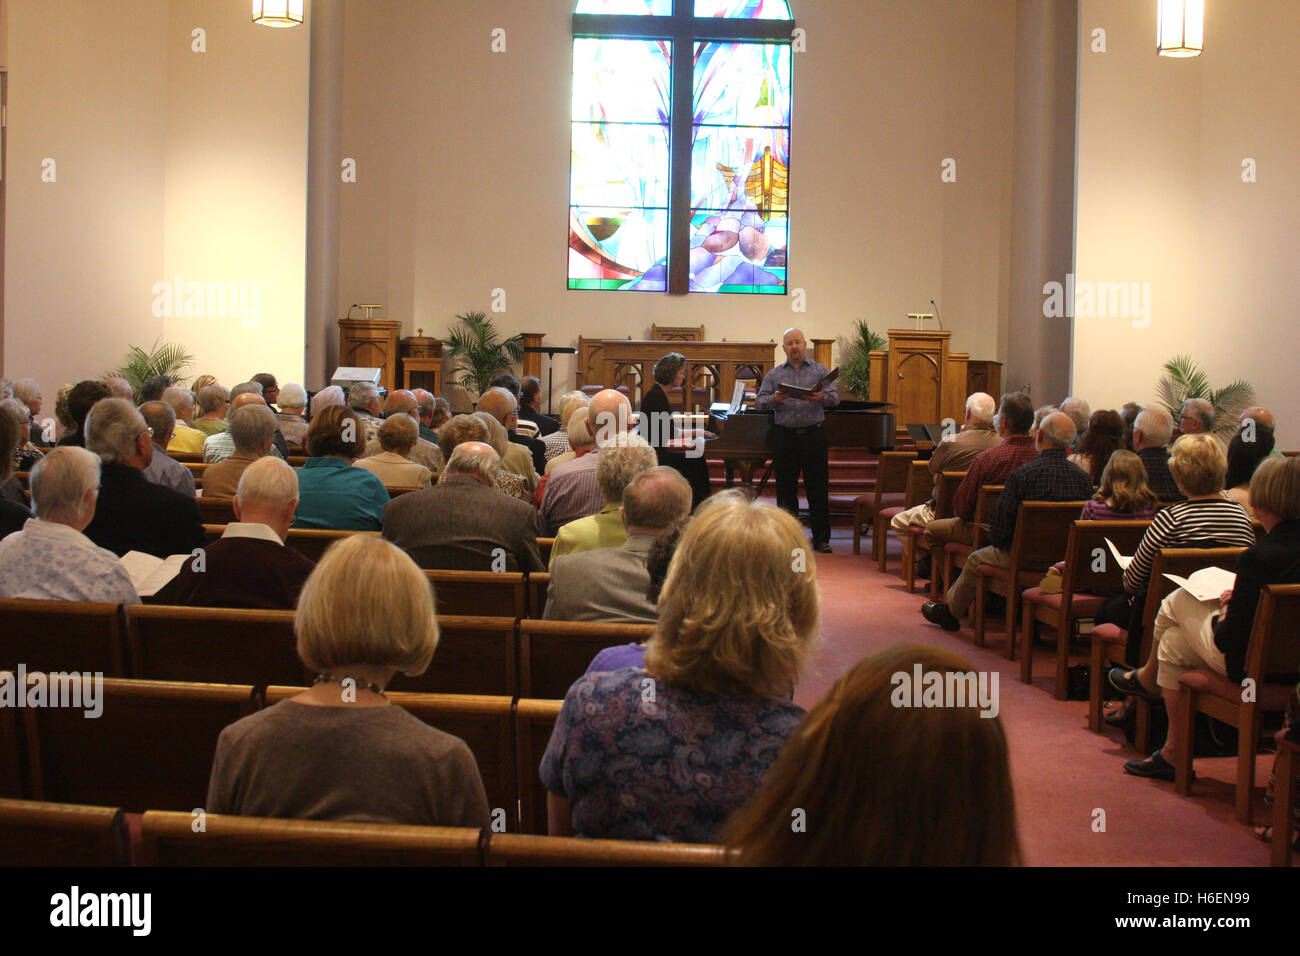 Singer and piano player having a public performance in church - Stock Image